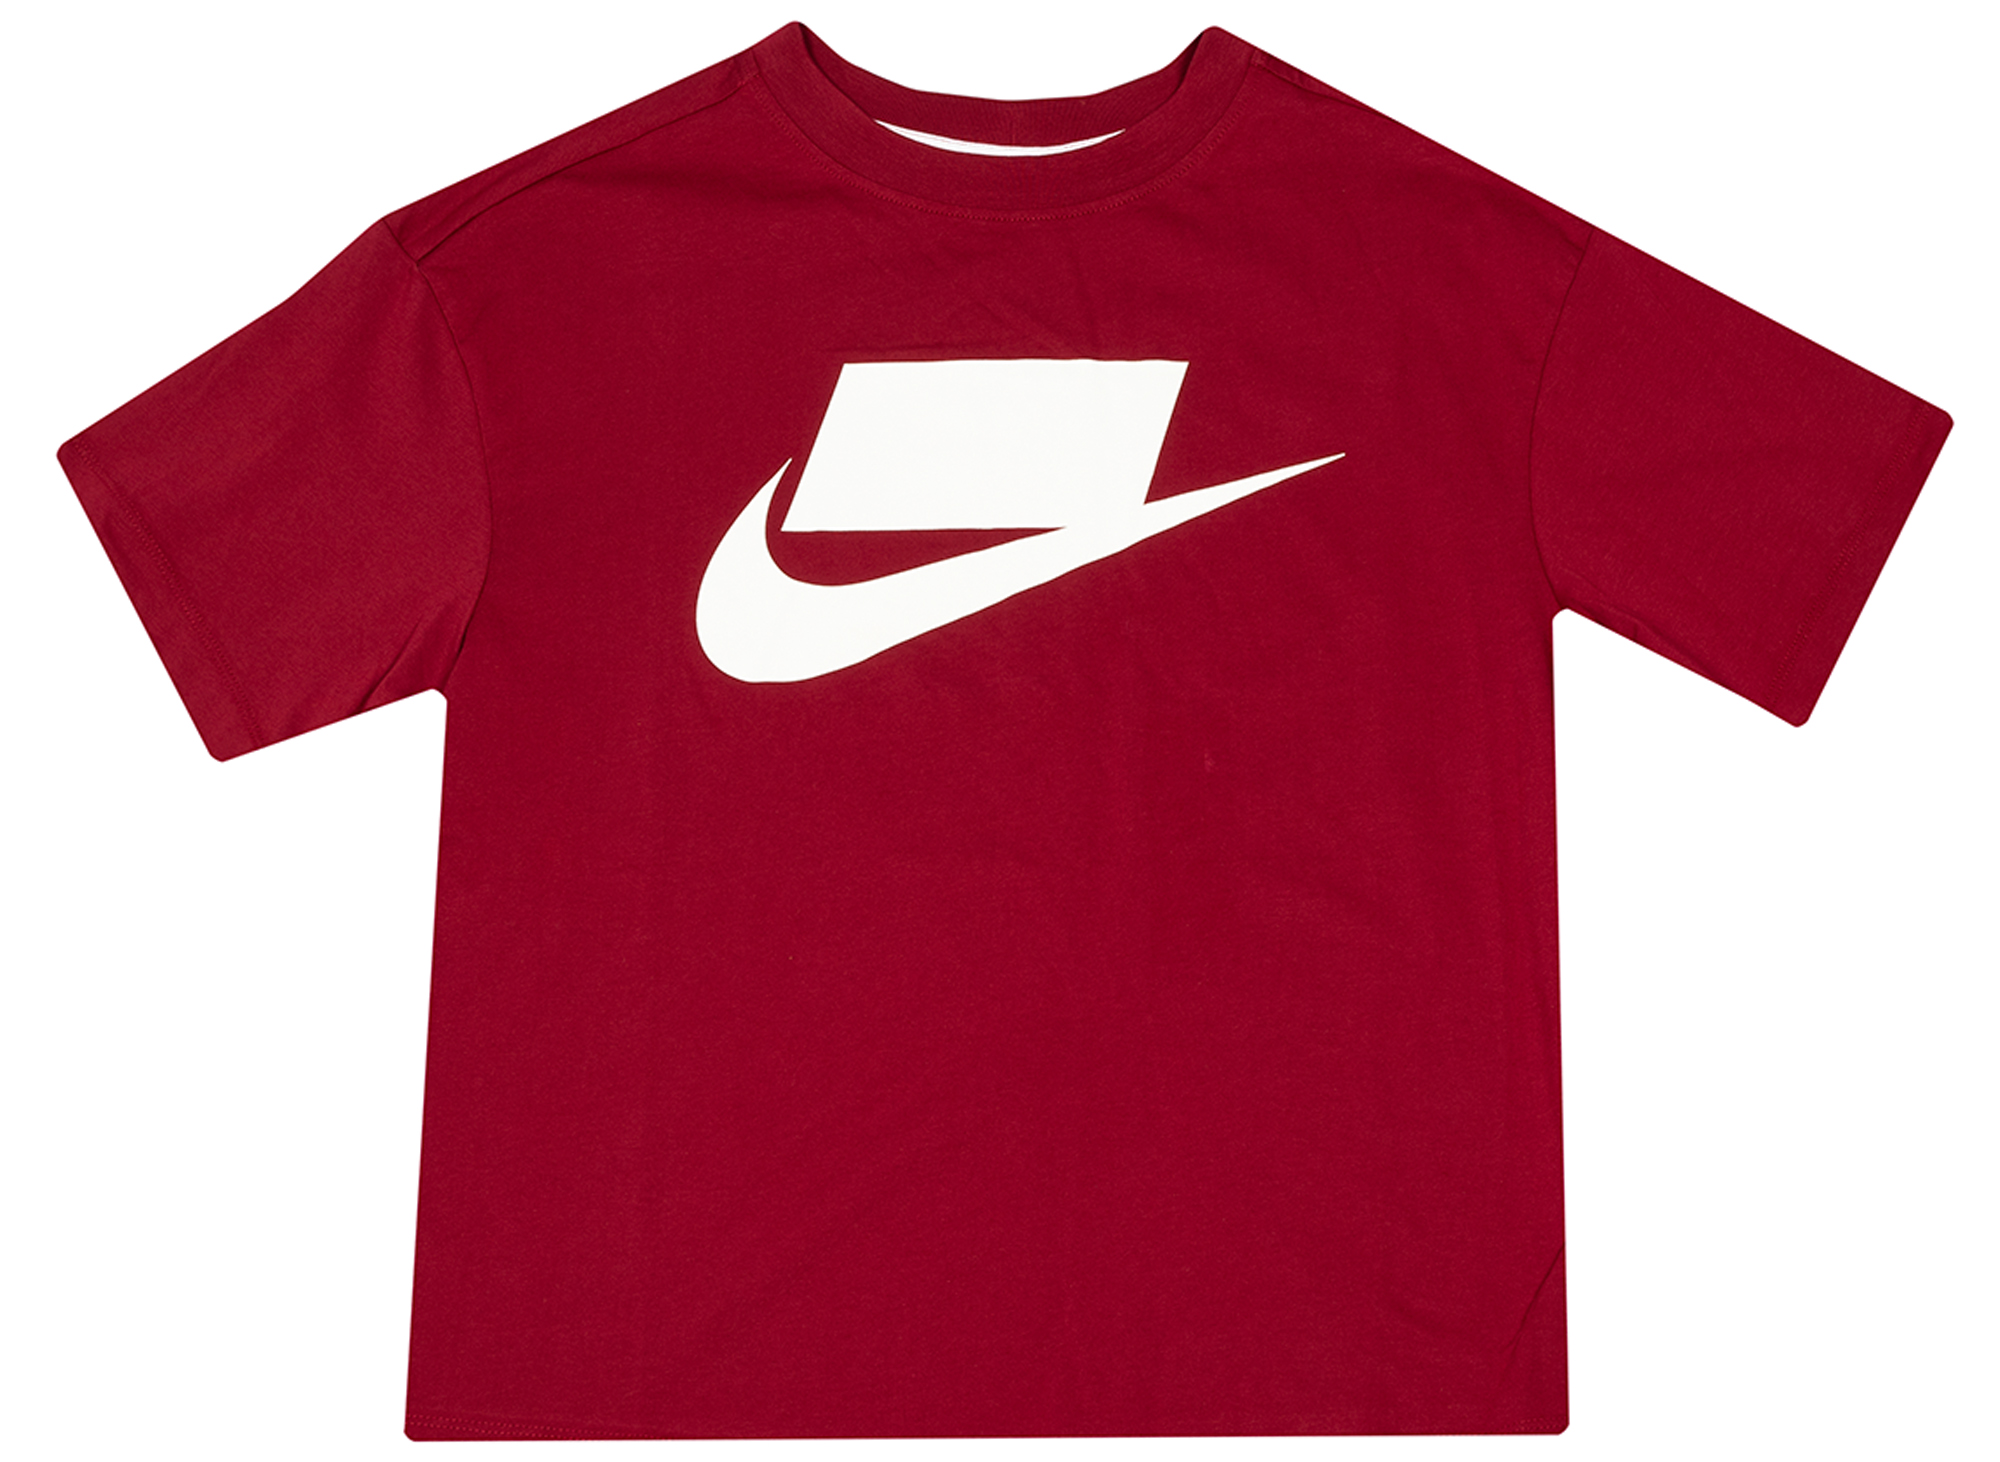 Women's Nike Sportswear NSW Shirt